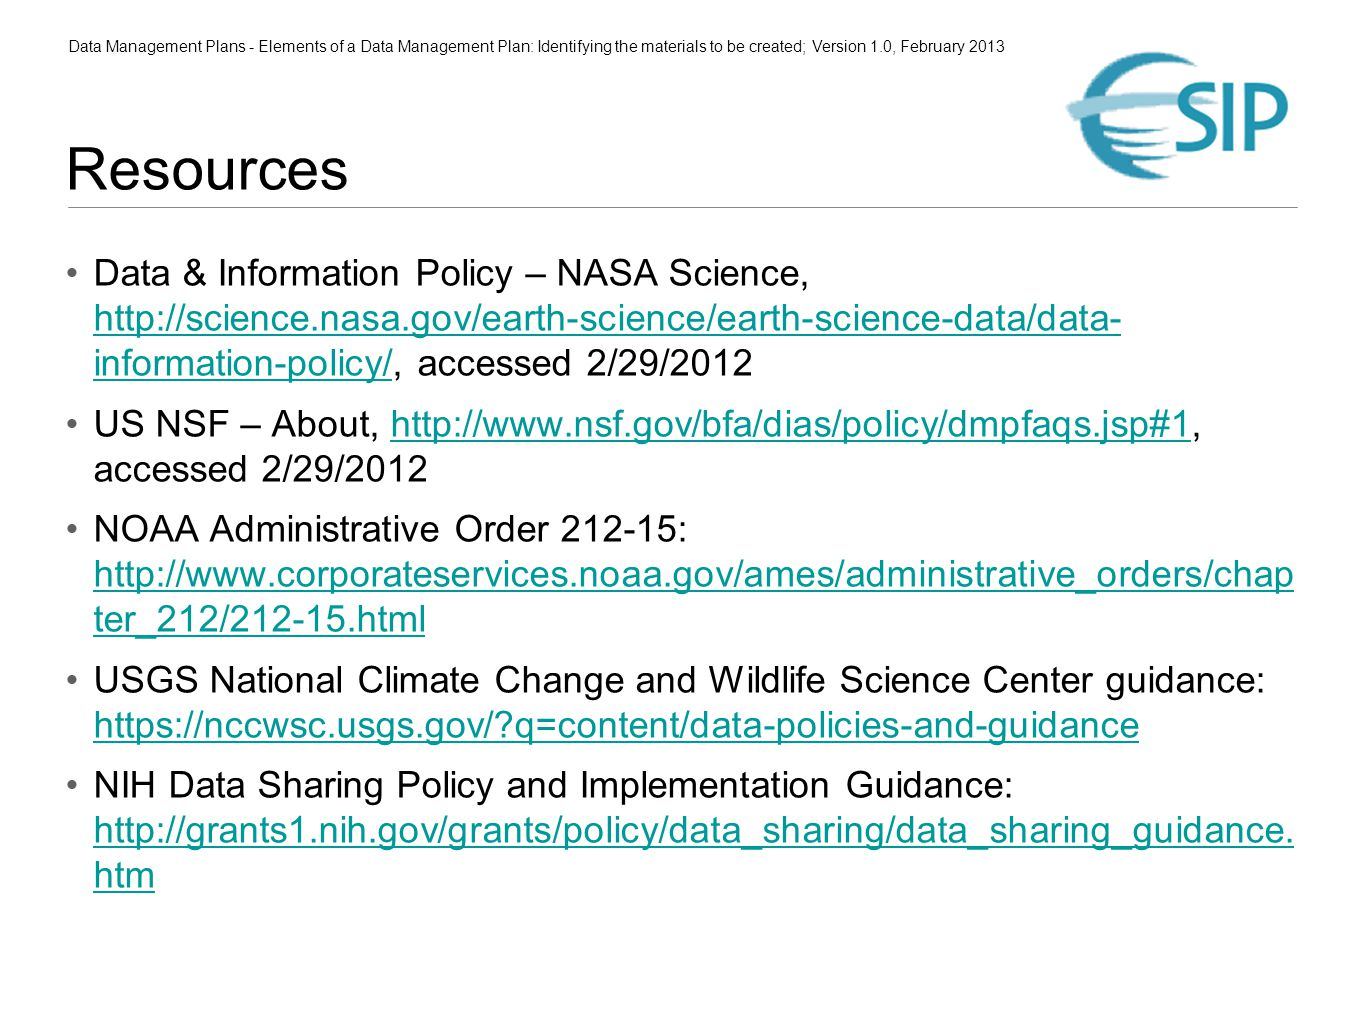 Data Management Plans - Elements of a Data Management Plan: Identifying the materials to be created; Version 1.0, February 2013 Resources Data & Information Policy – NASA Science, http://science.nasa.gov/earth-science/earth-science-data/data- information-policy/, accessed 2/29/2012 http://science.nasa.gov/earth-science/earth-science-data/data- information-policy/ US NSF – About, http://www.nsf.gov/bfa/dias/policy/dmpfaqs.jsp#1, accessed 2/29/2012http://www.nsf.gov/bfa/dias/policy/dmpfaqs.jsp#1 NOAA Administrative Order 212-15: http://www.corporateservices.noaa.gov/ames/administrative_orders/chap ter_212/212-15.html http://www.corporateservices.noaa.gov/ames/administrative_orders/chap ter_212/212-15.html USGS National Climate Change and Wildlife Science Center guidance: https://nccwsc.usgs.gov/ q=content/data-policies-and-guidance https://nccwsc.usgs.gov/ q=content/data-policies-and-guidance NIH Data Sharing Policy and Implementation Guidance: http://grants1.nih.gov/grants/policy/data_sharing/data_sharing_guidance.